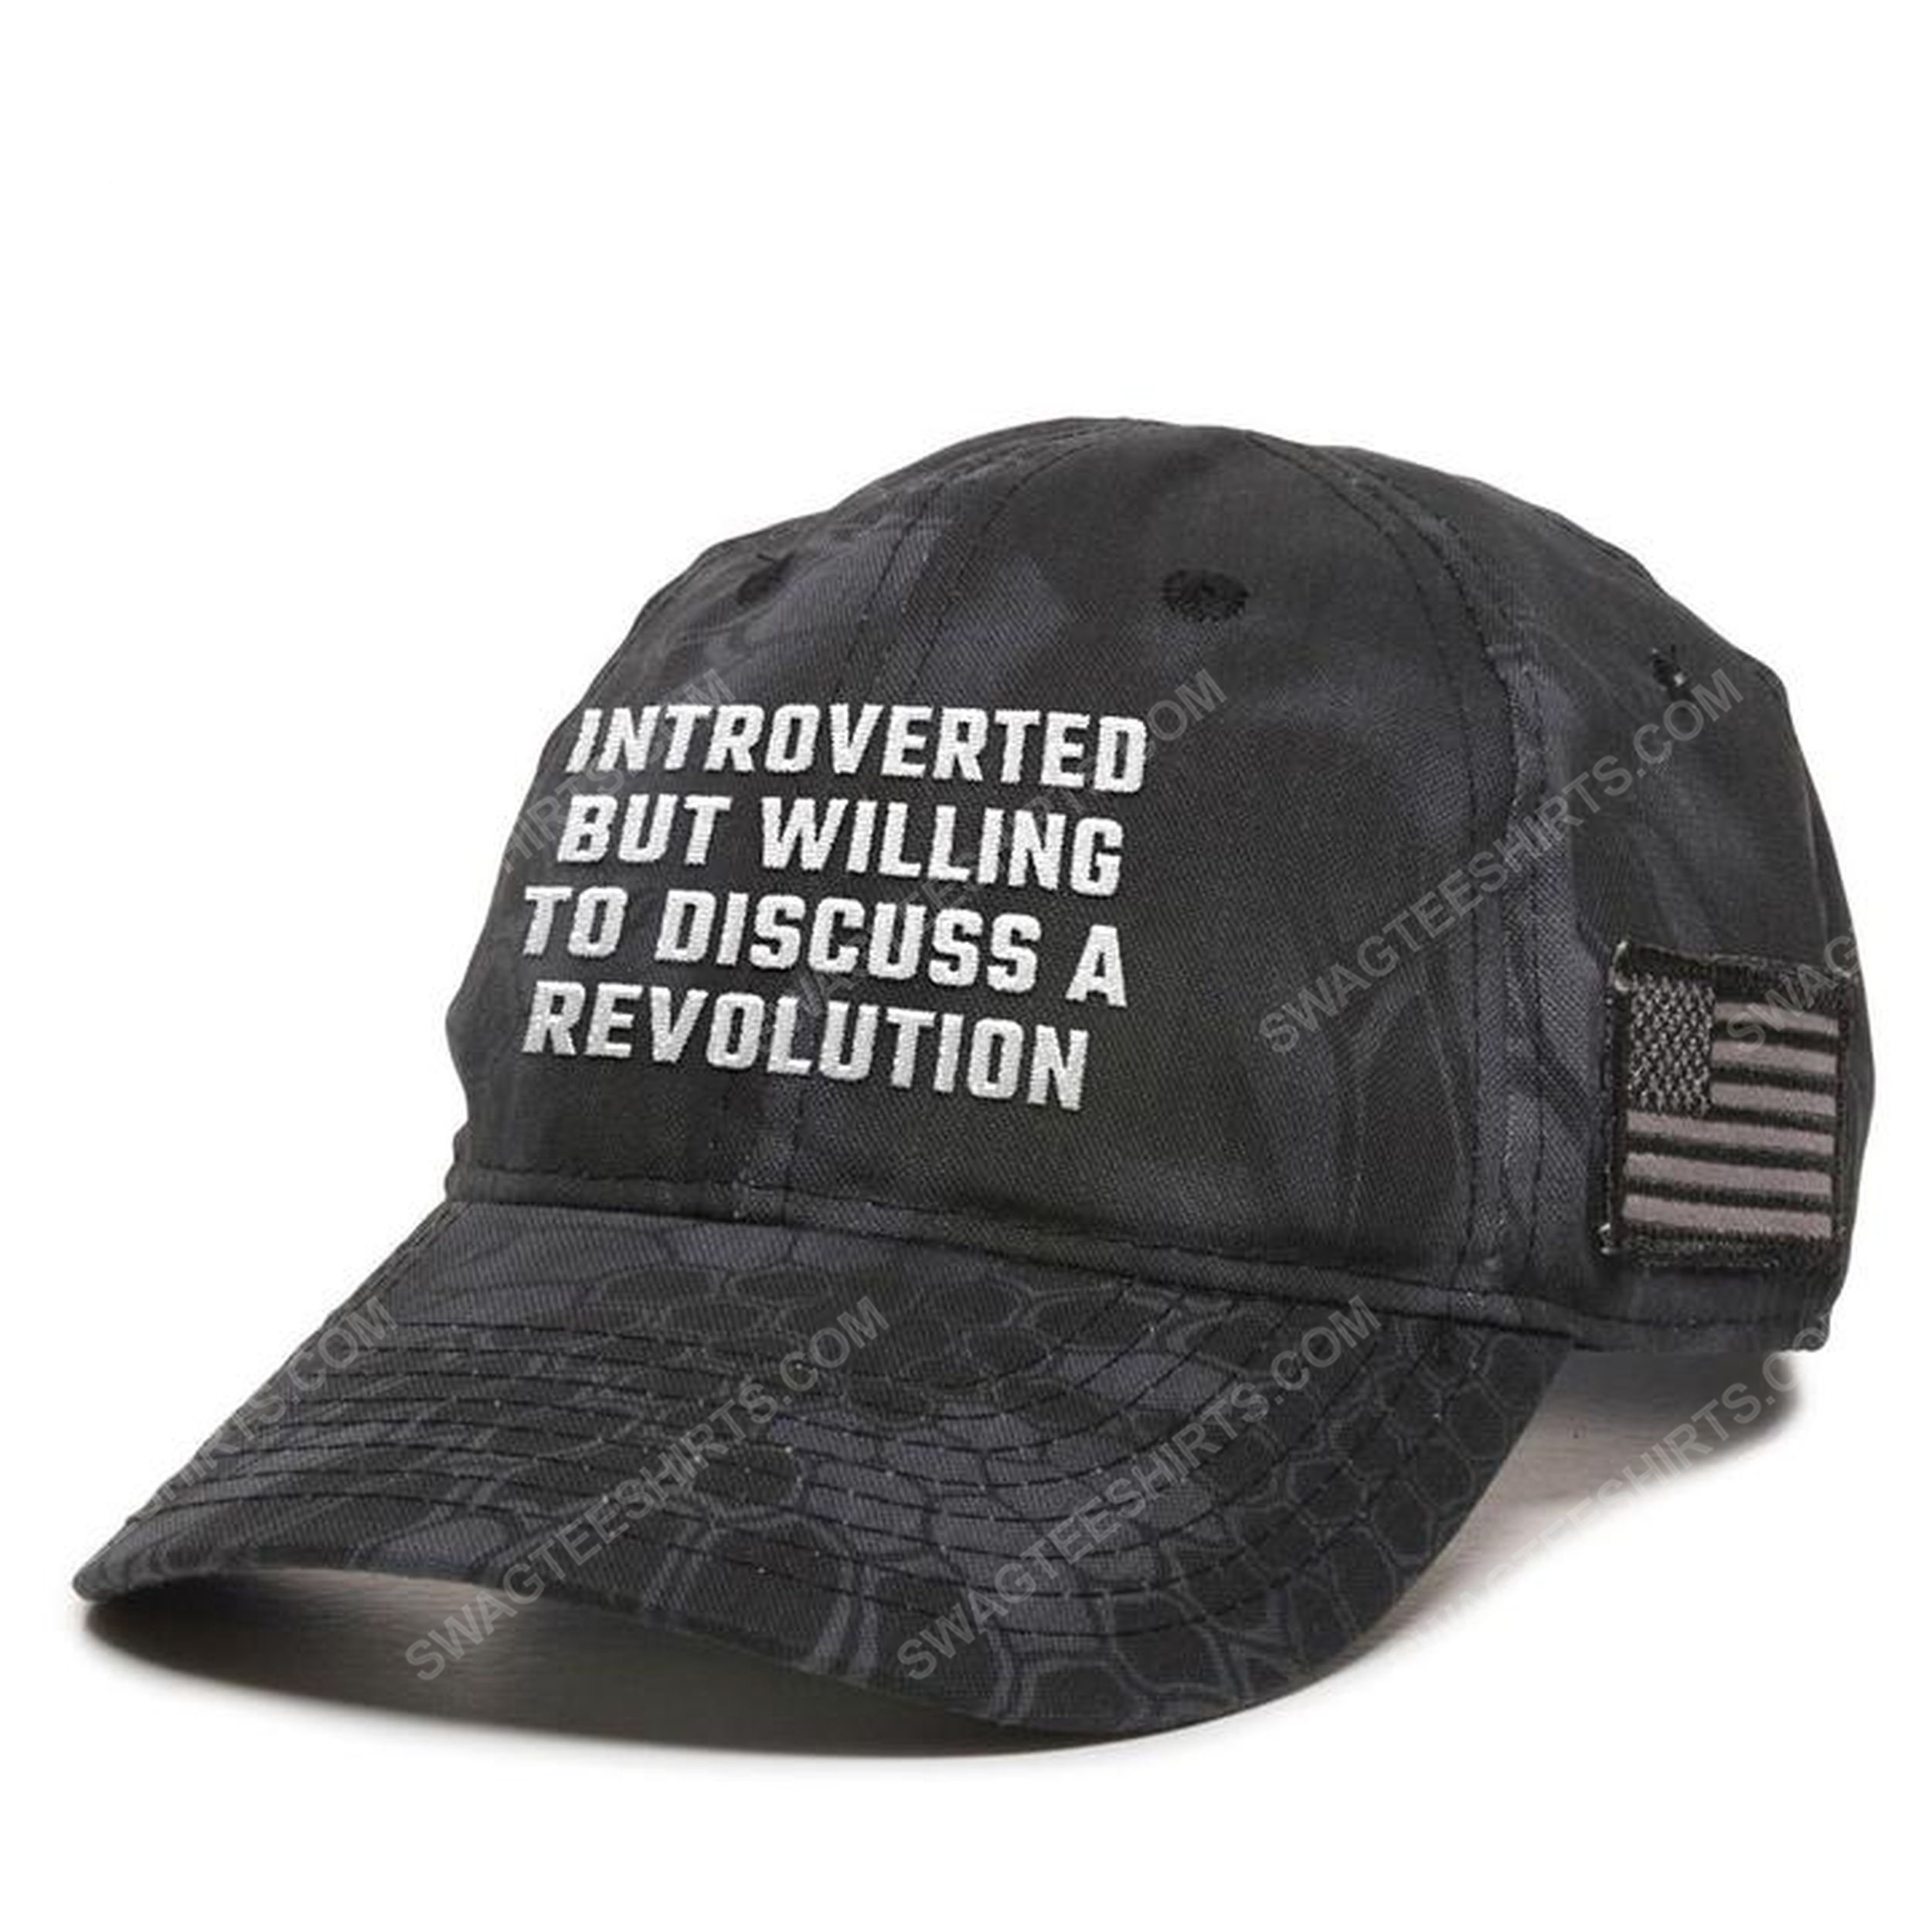 Introverted but willing to discuss a revolution full print classic hat 1 - Copy (2)